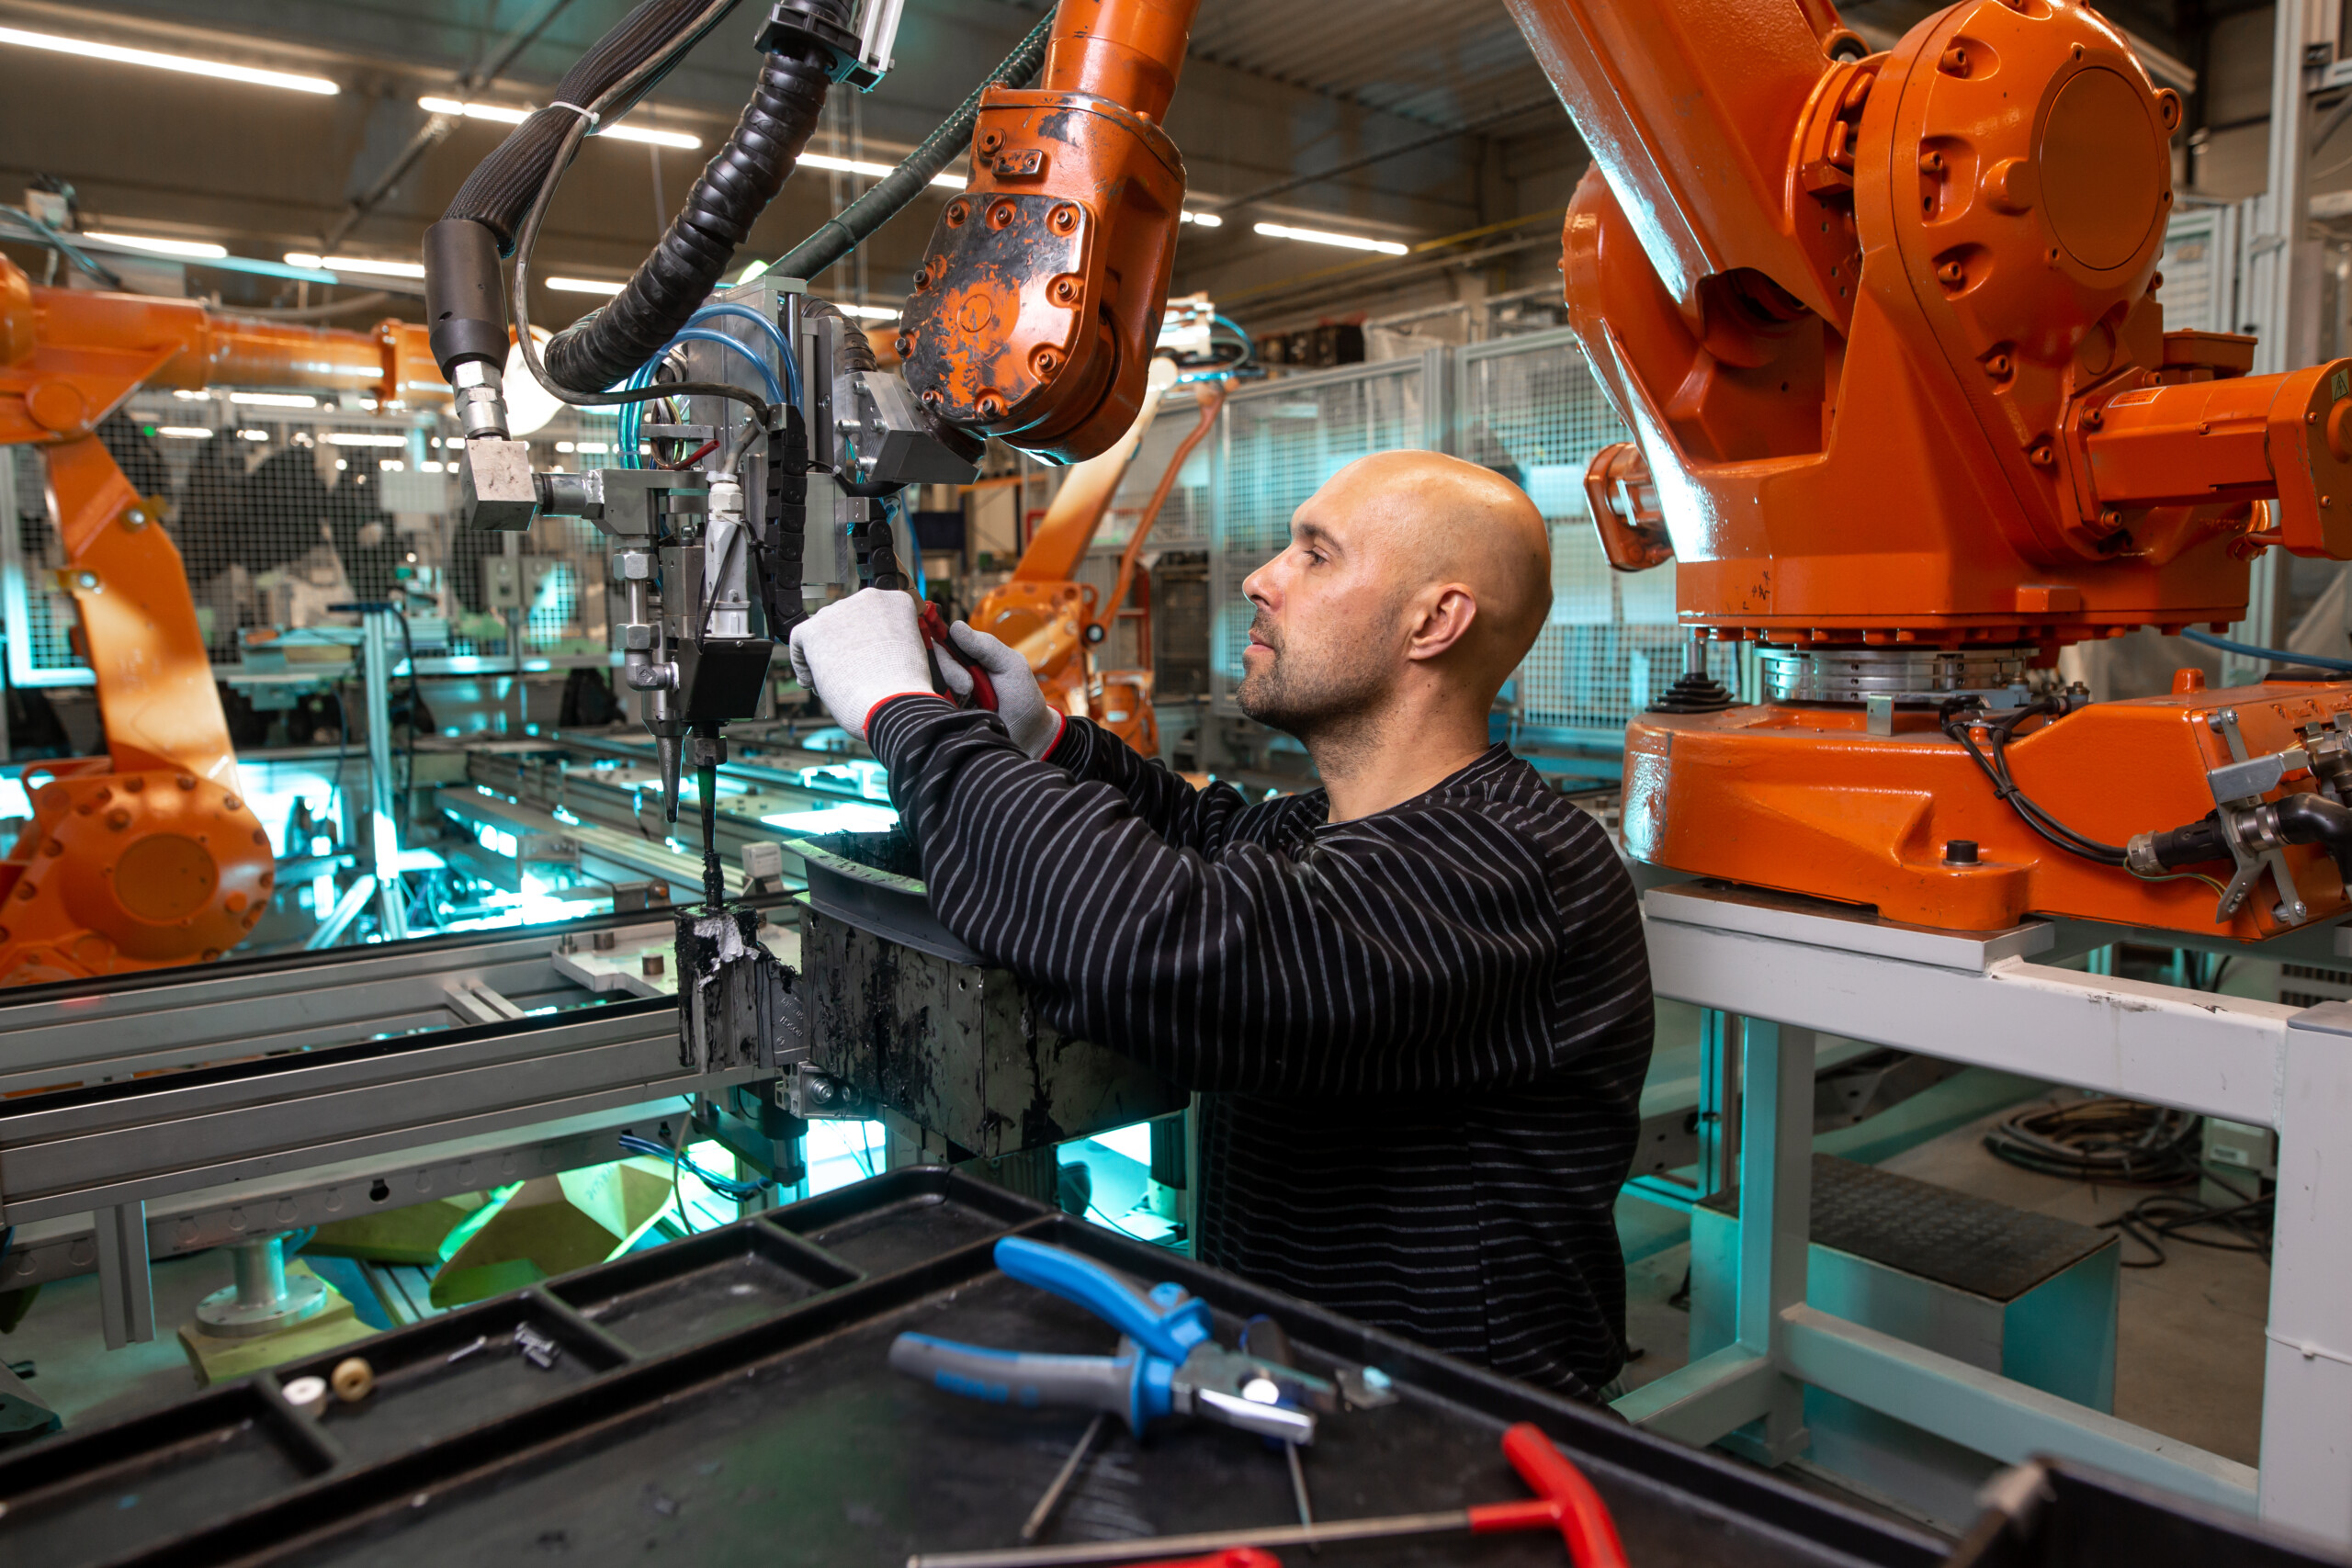 Engineer doing maintenance on a automatic robot arms in automotive industrial